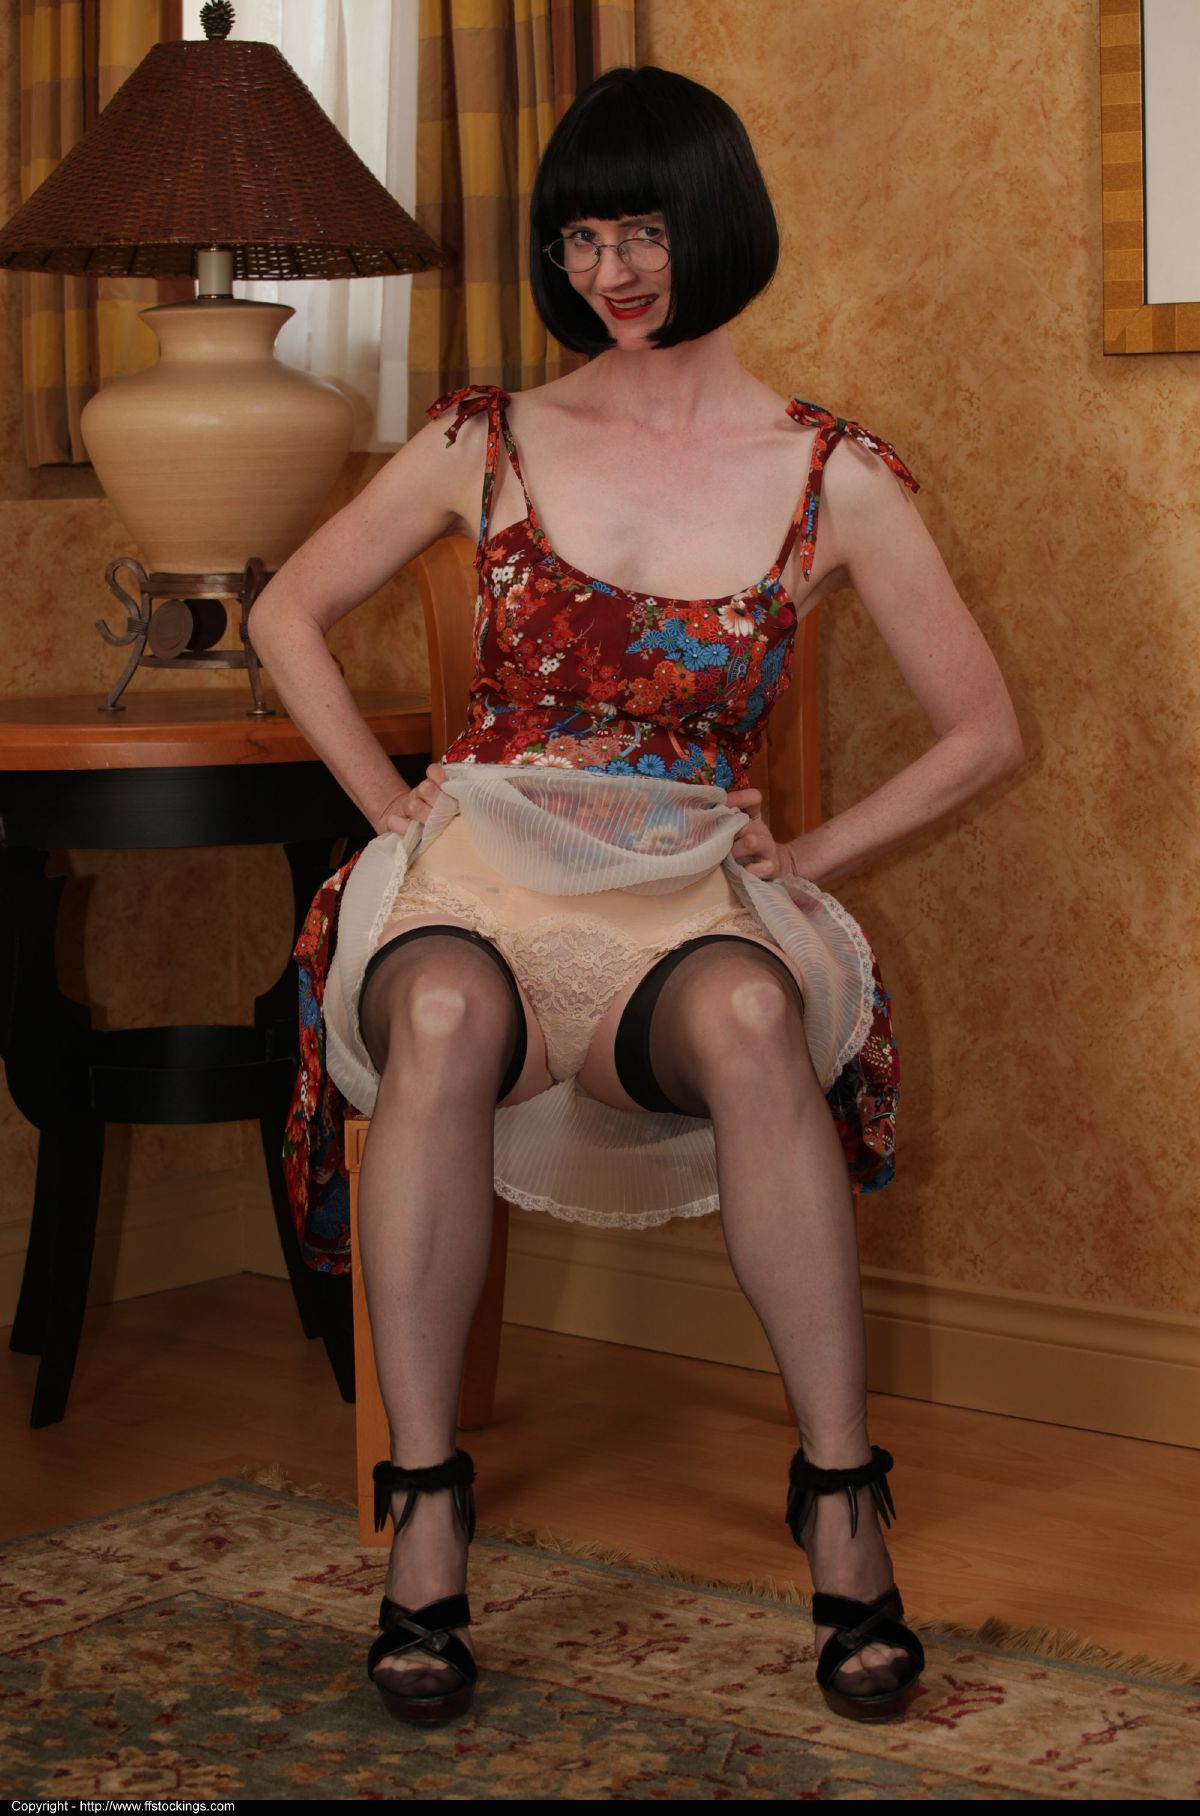 Think, Upskirt panties stockings can recommend